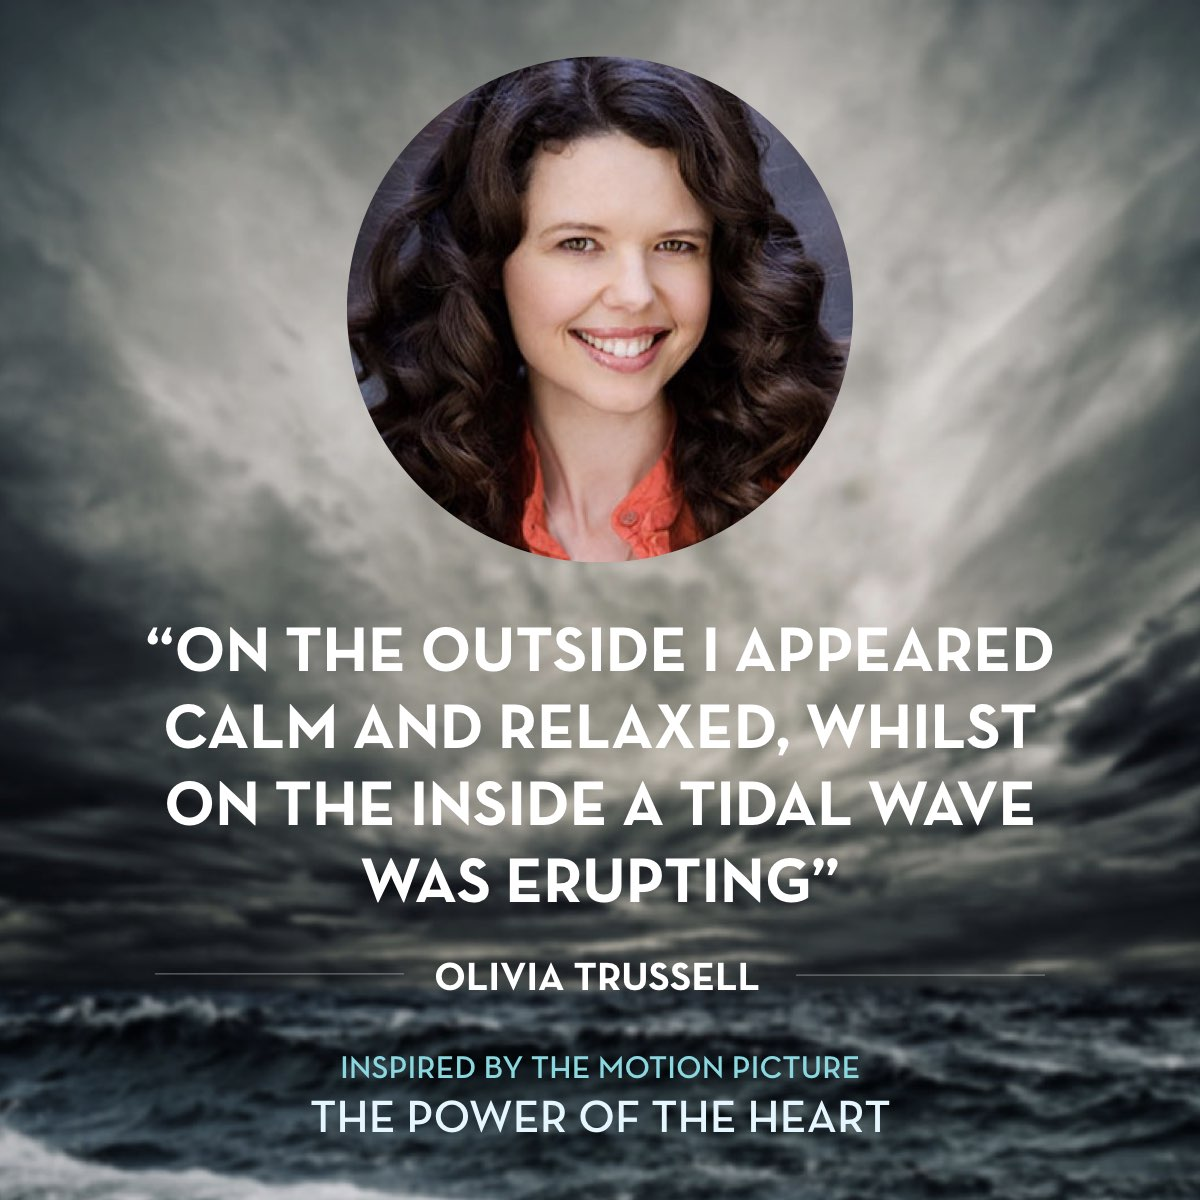 From 'How I Cured My Anxiety' by Olivia TRUSSELL. Read the full story at thepoweroftheheart.com